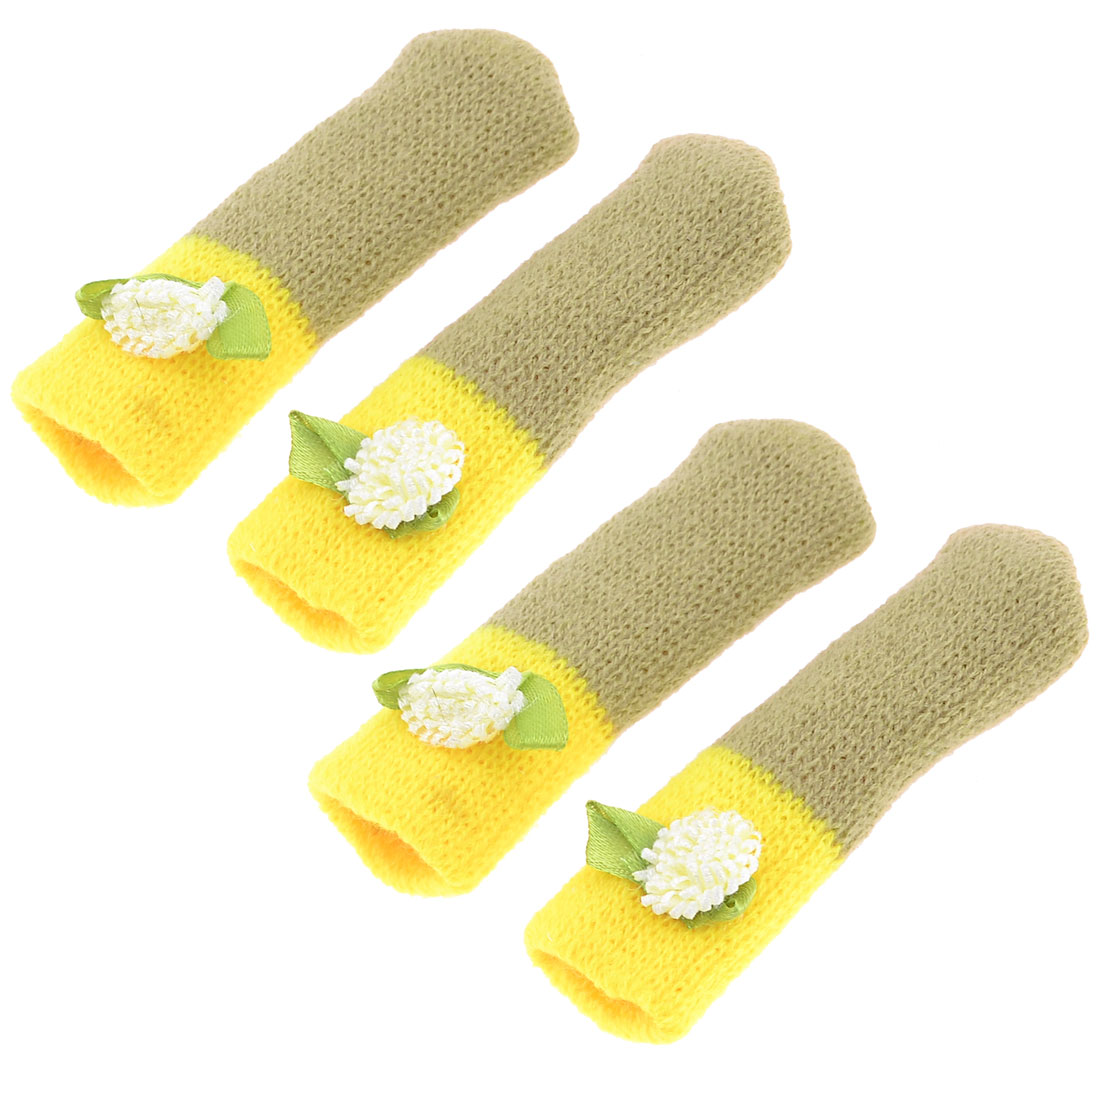 4pcs Flower Decor Yellow Olive Green Knitting Chair Leg Cover Protector Sock Pads